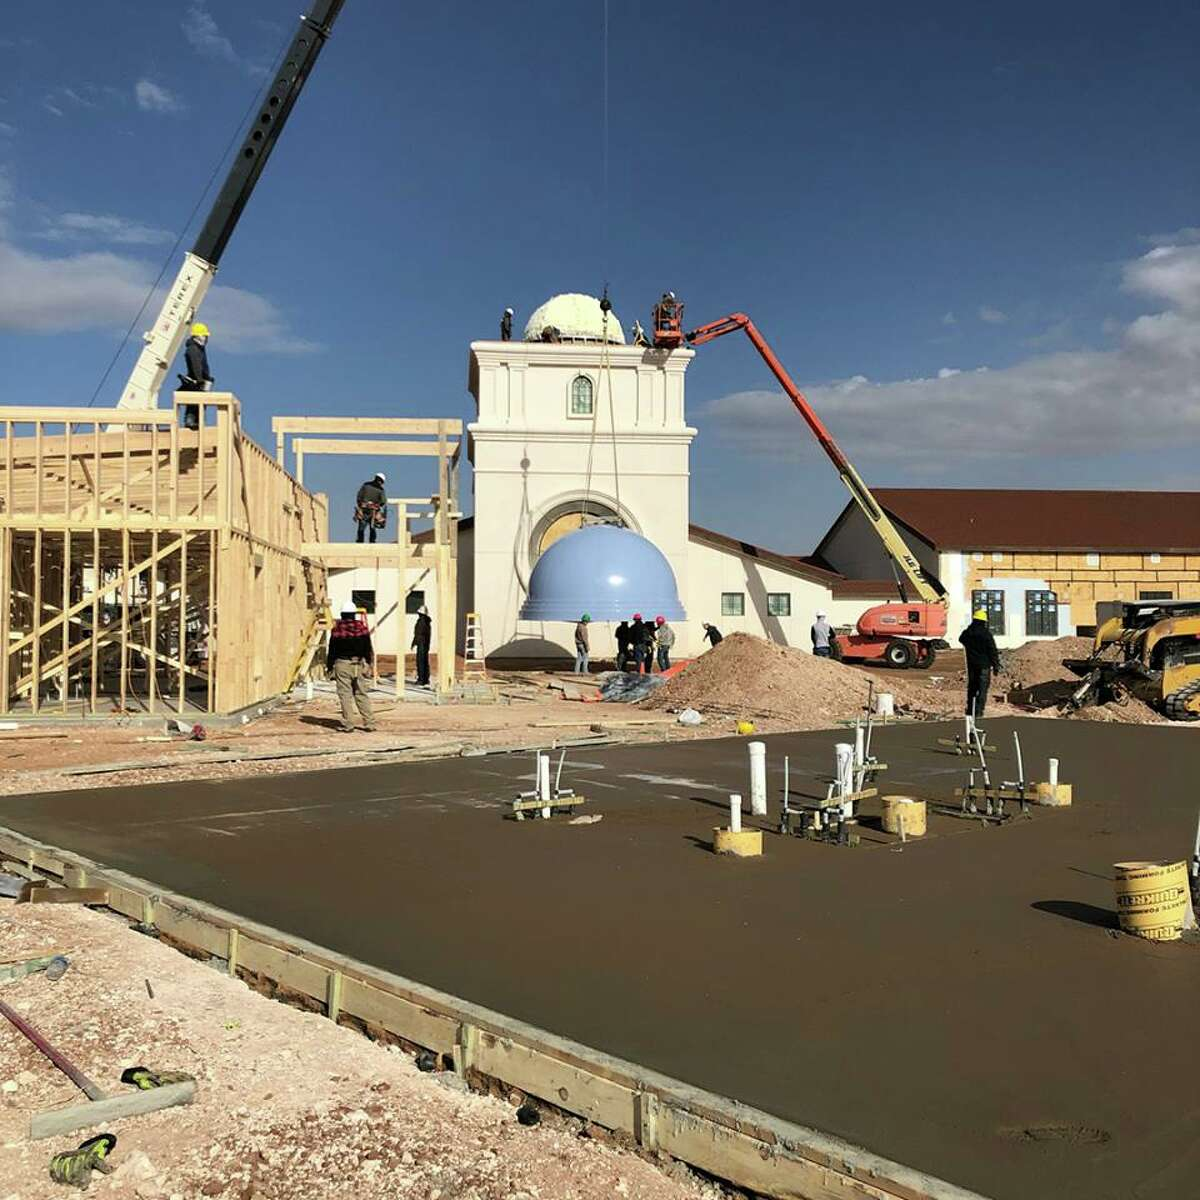 Workers on Thursday installed a blue dome and cupola on the top of the chapel at The Way Retreat Center on Todd Road. The nondenominational facility, which will host events such as spiritual and corporate retreats and weddings, is scheduled to open in April. Groundbreaking for The Way was in June 2016, but it is a project that was more than 10 years in the making, according to a previous Reporter-Telegram article. It is the culmination of planning and commitment on the parts of many people, especially Mike LaMonica, capital campaign manager; Brian Fralin, president of the nonprofit's board; and Andy Iverson, board vice president. For more information, visit thewayrc.com .